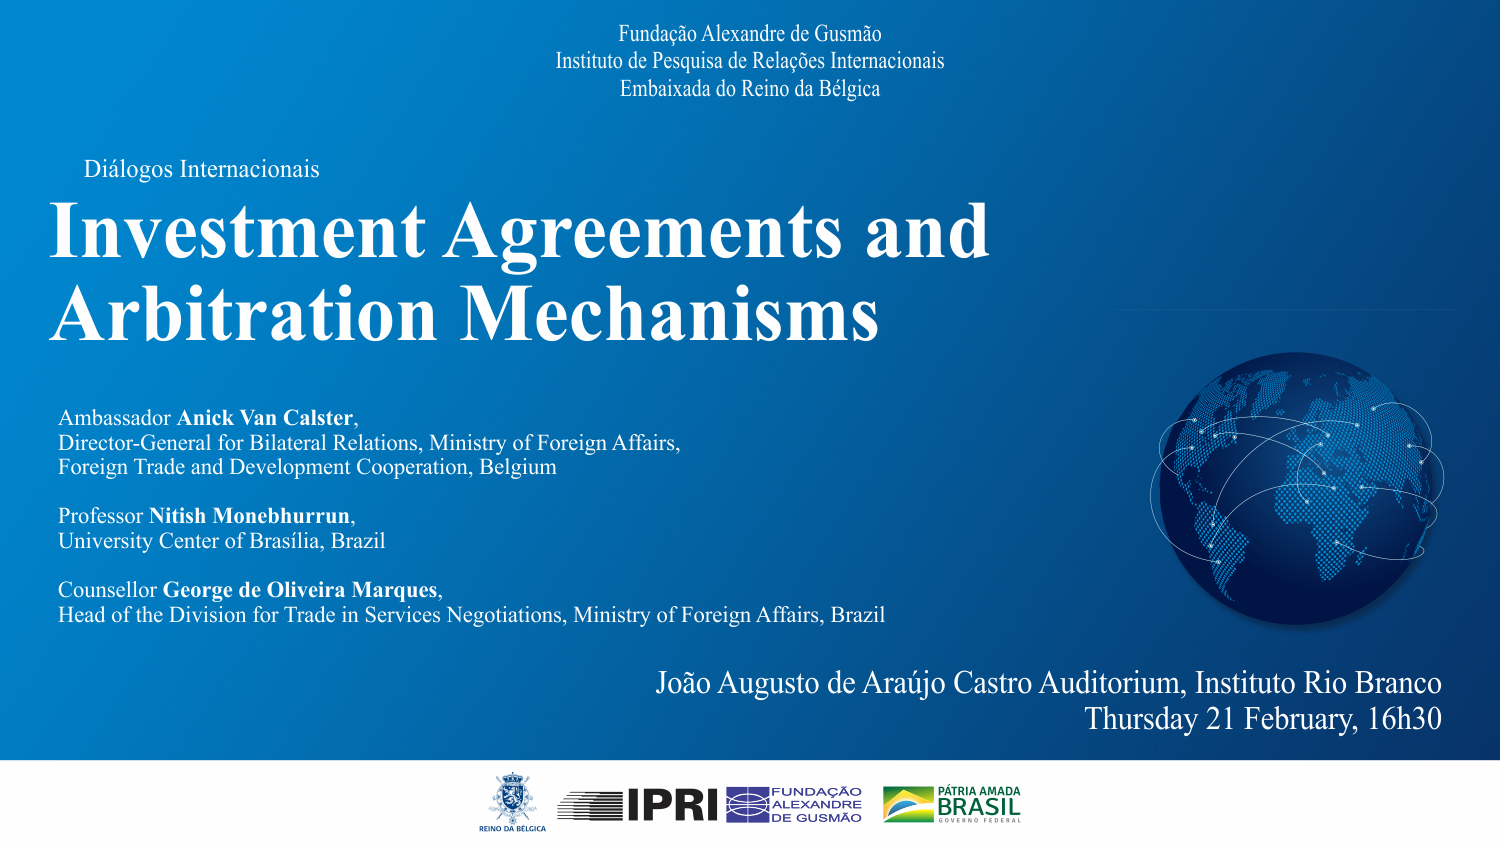 Diálogos Internacionais: Investment Agreements and Arbitration Mechanisms